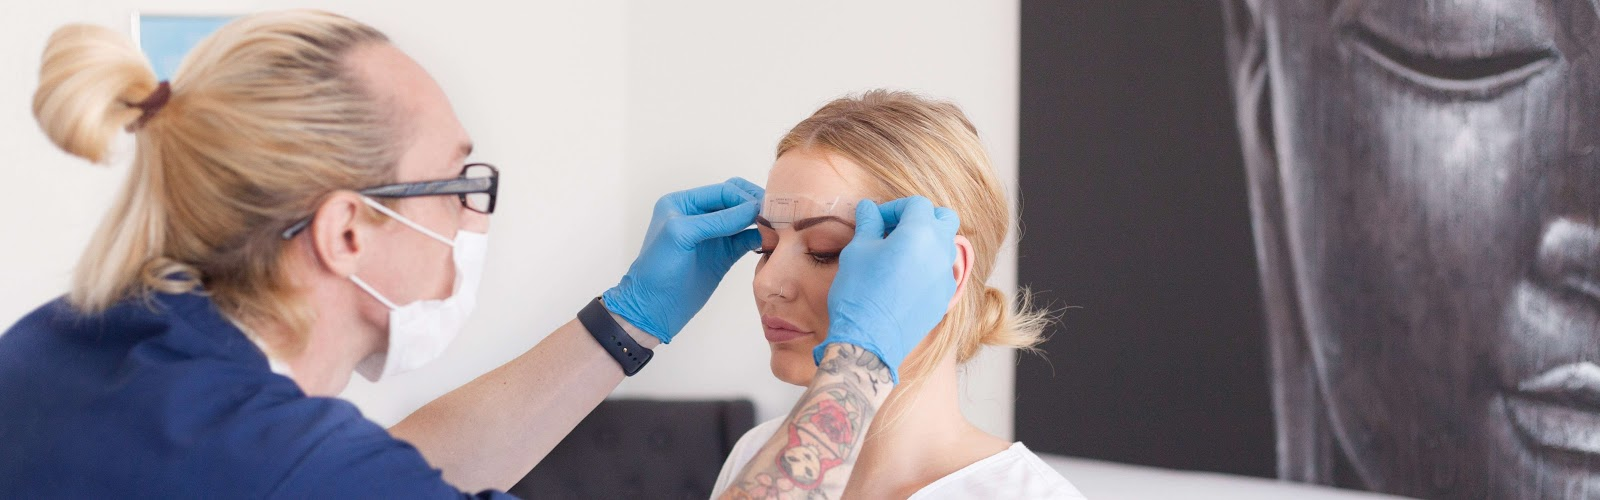 Permanent Makeup Consultation for Tattooed Eyebrows